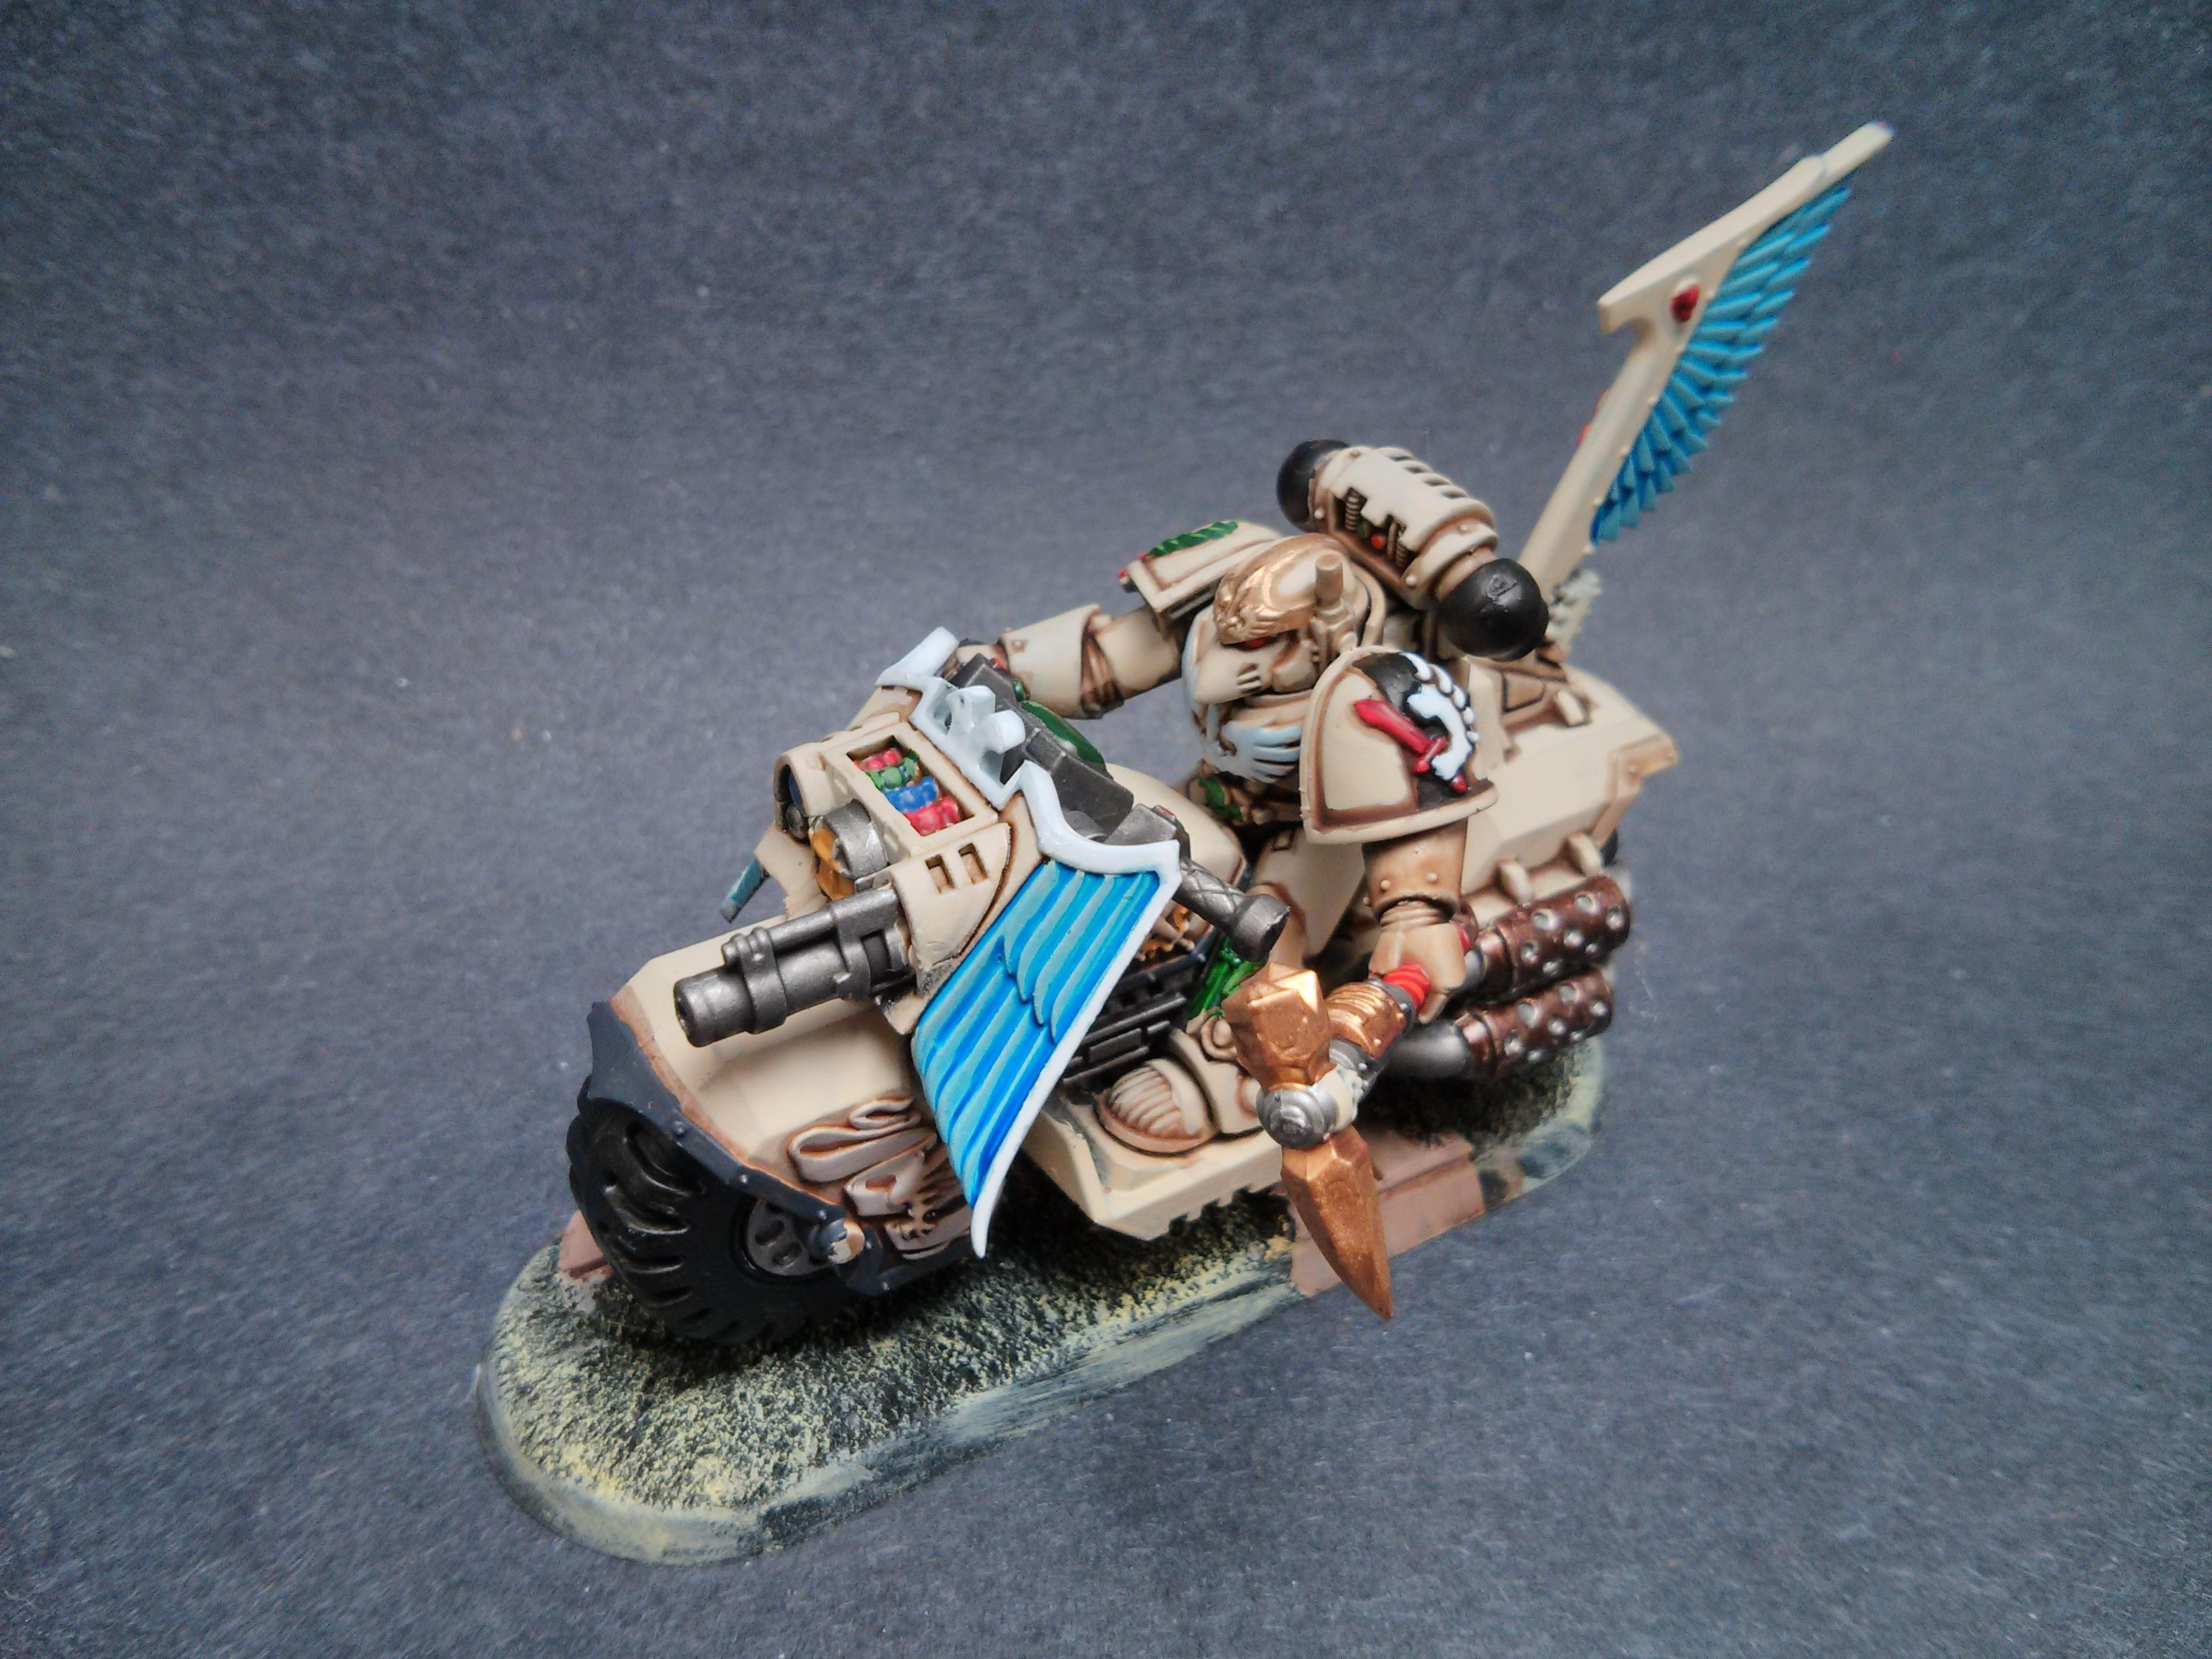 One of the Ravenwing Knight that is almost finished